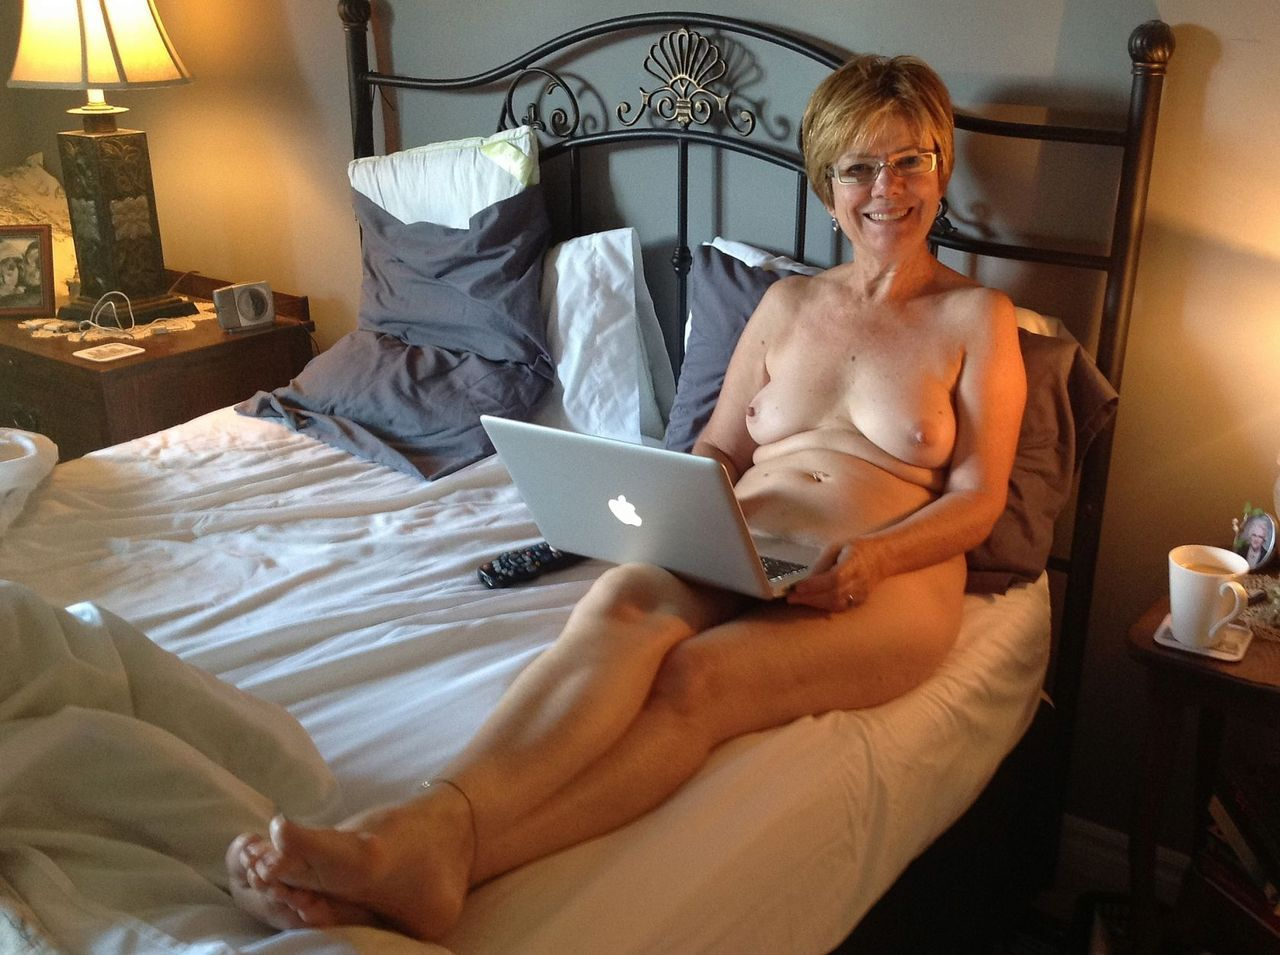 nude-family-on-bed